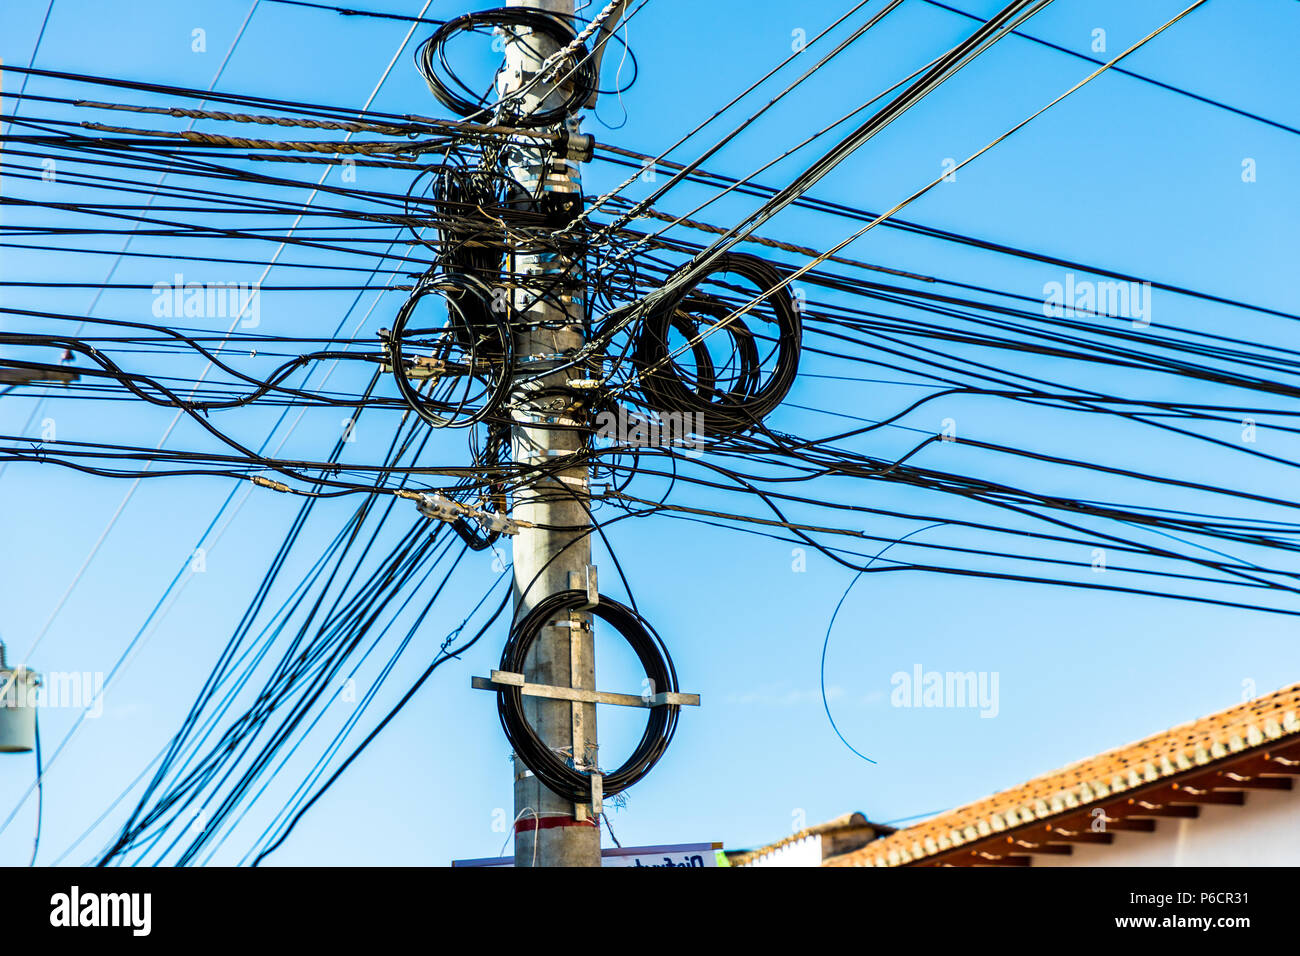 Leon Nicaragua February 2018 A View Of Messy Wiring In